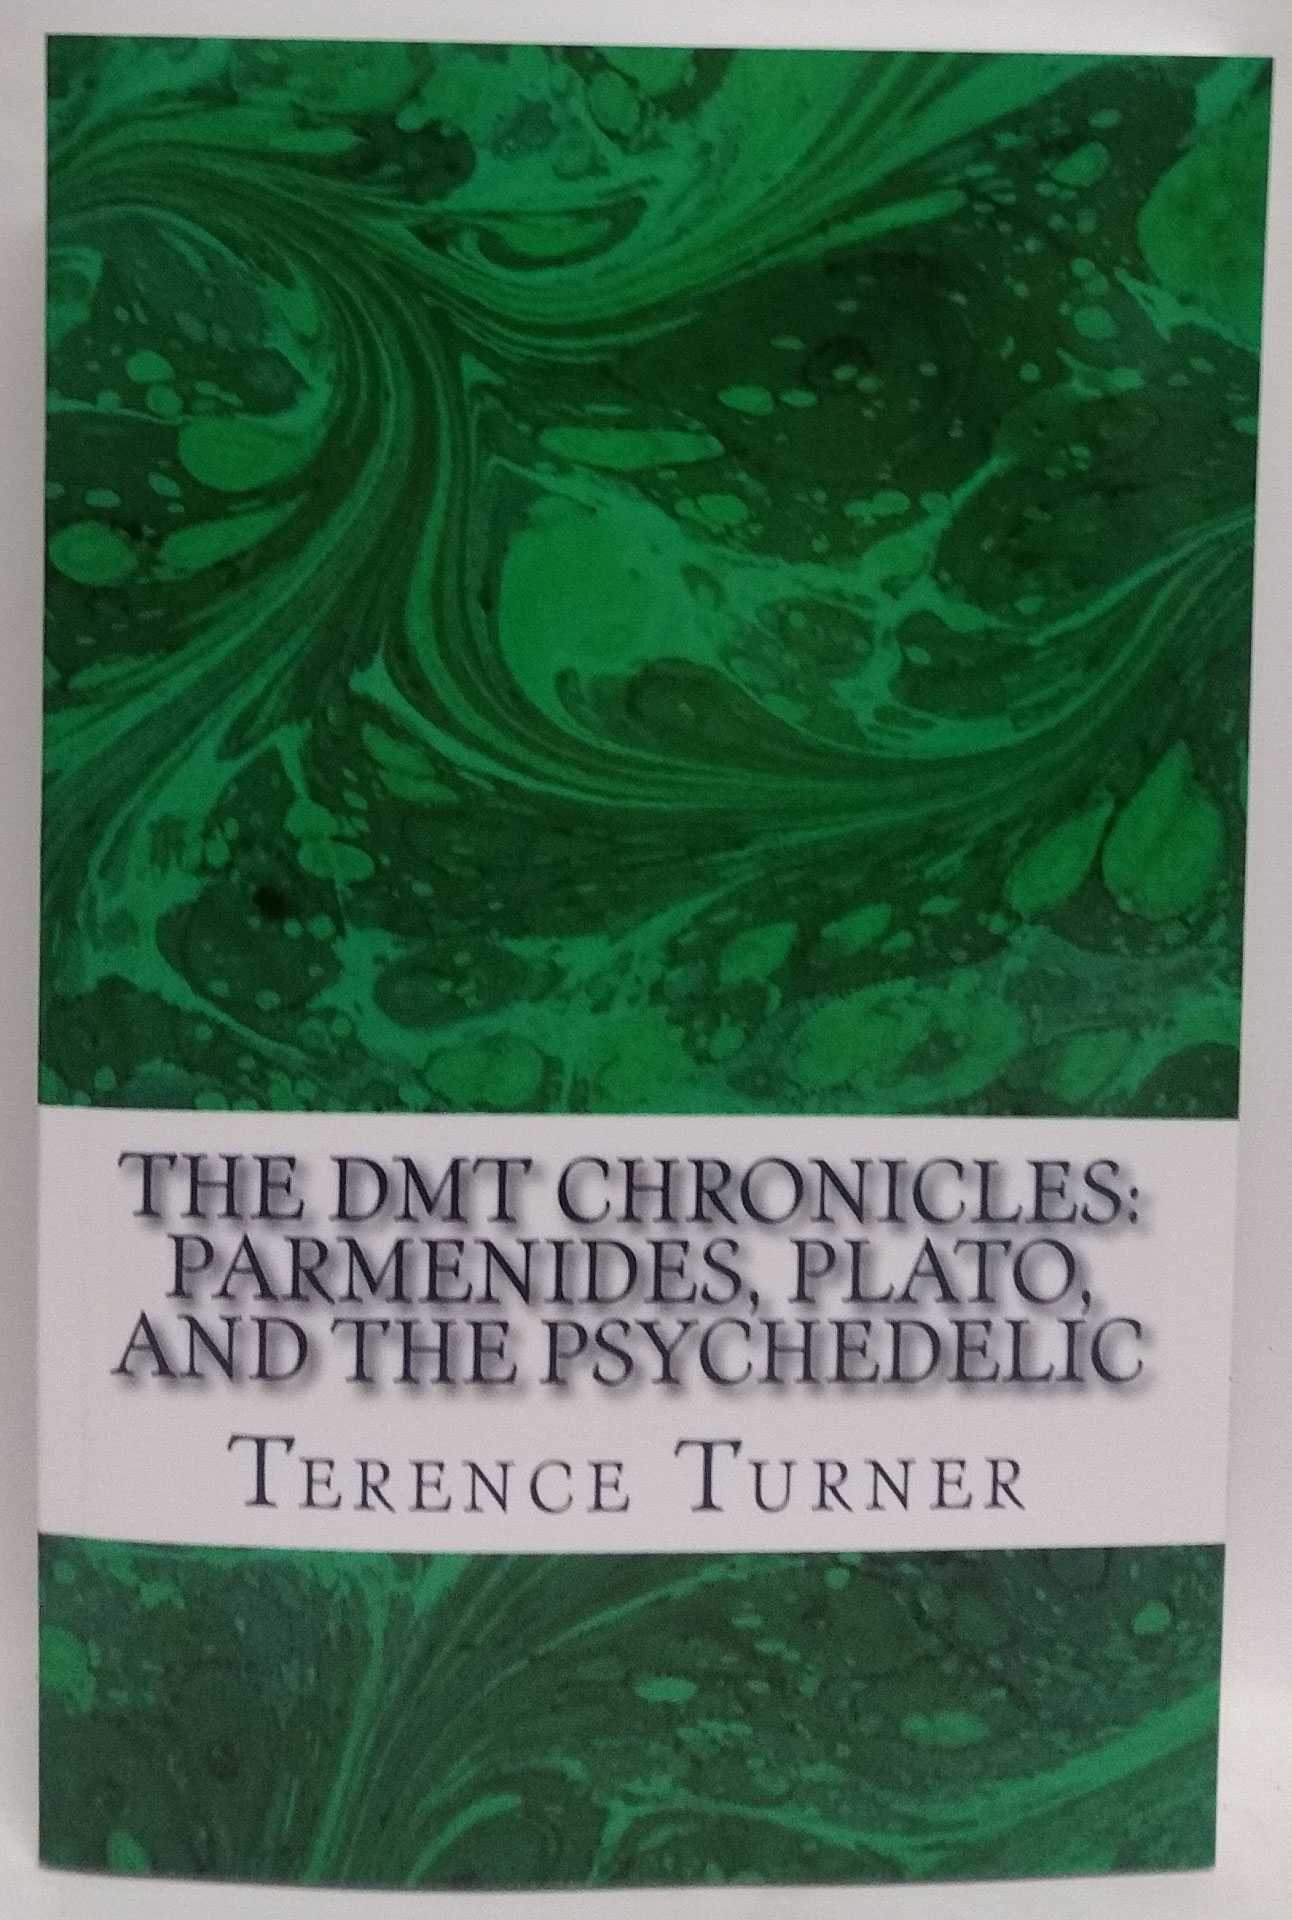 The DMT Chronicles: Paramenides, Plato, and the Psychedelic, Terence Turner